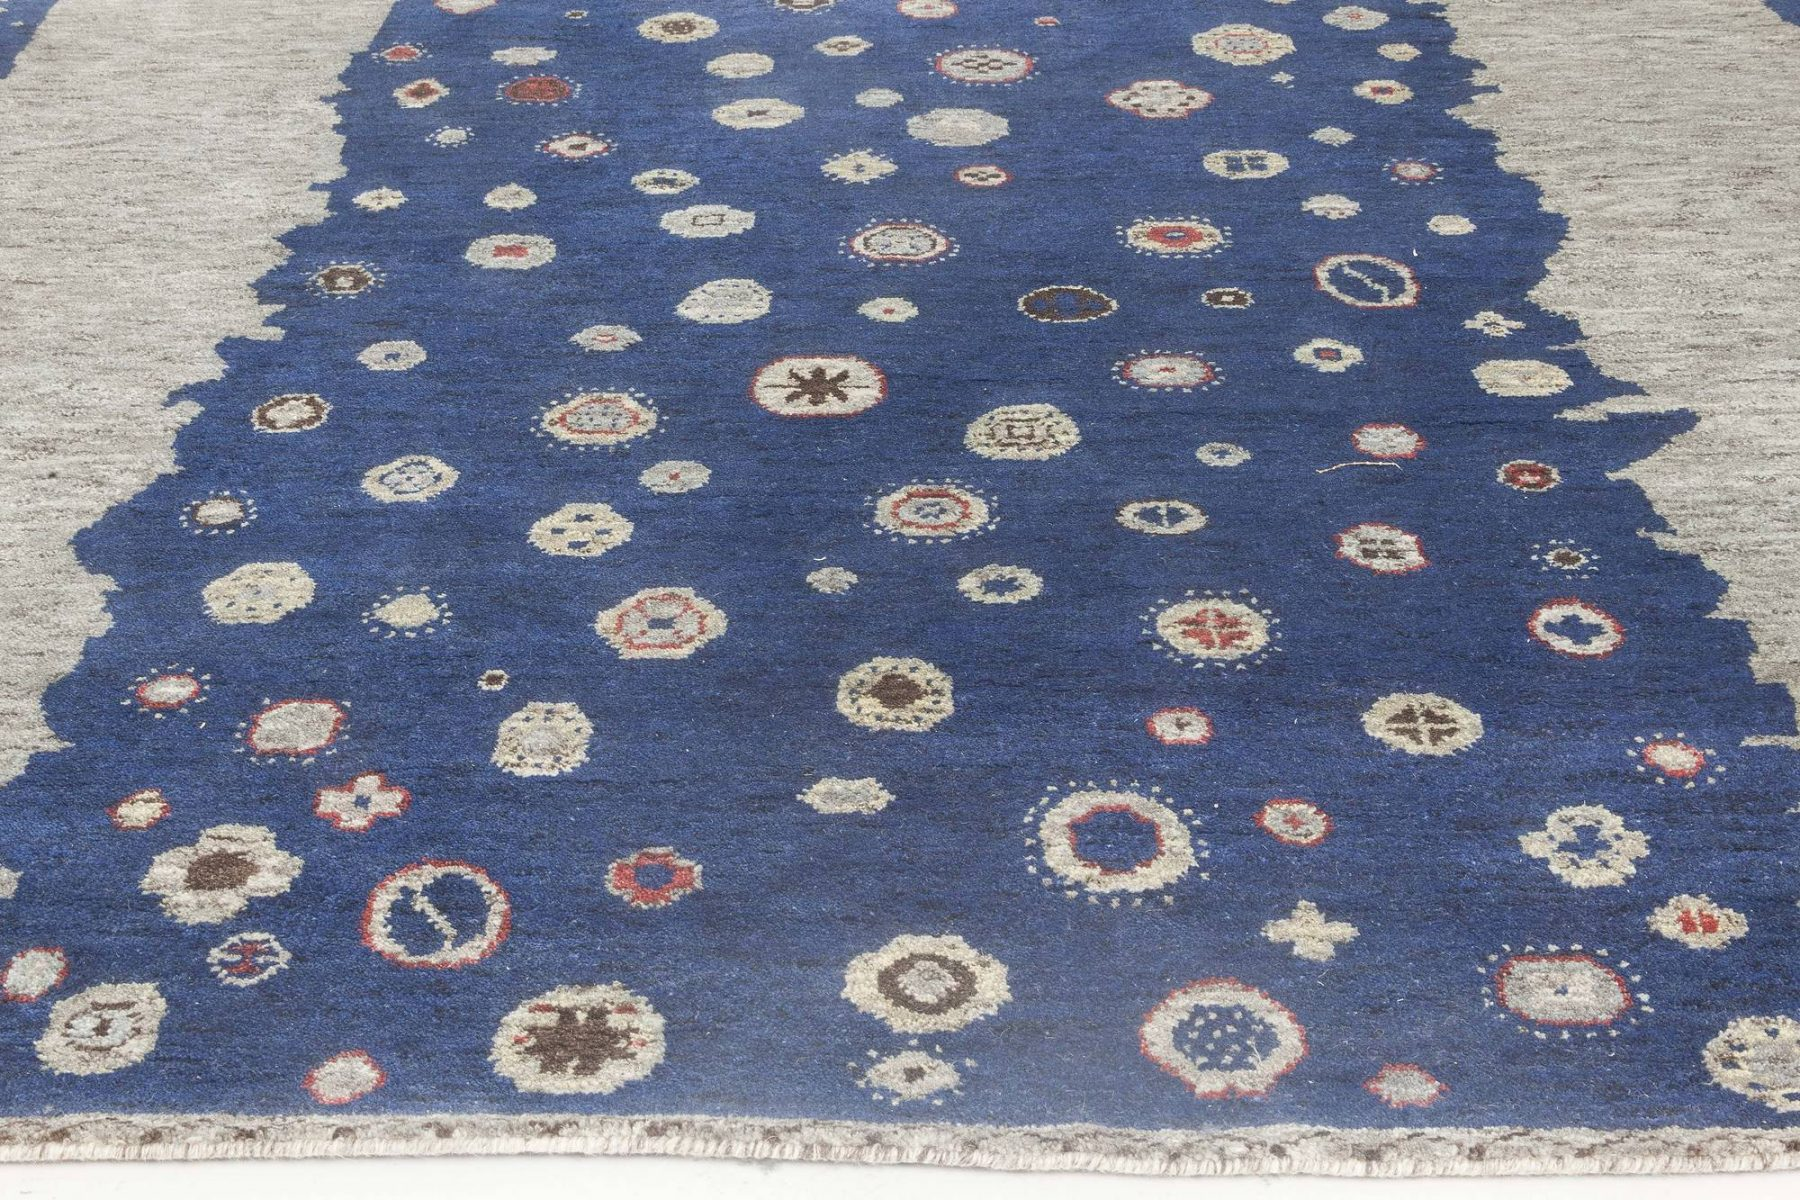 Navy Blue and Gray Flen Swedish Inspired Wool Pile Rug N11815